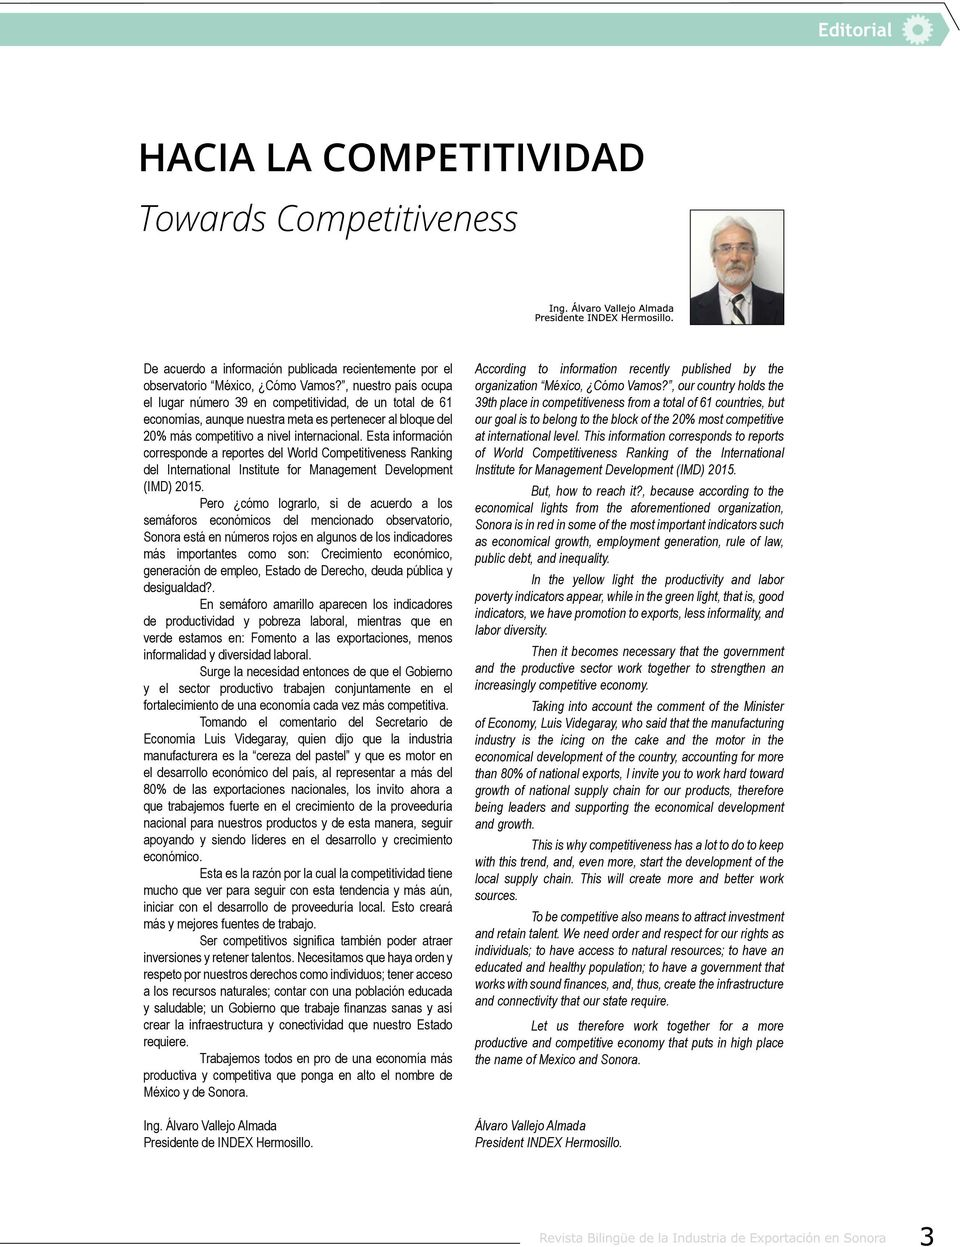 Esta información corresponde a reportes del World Competitiveness Ranking del International Institute for Management Development (IMD) 2015.